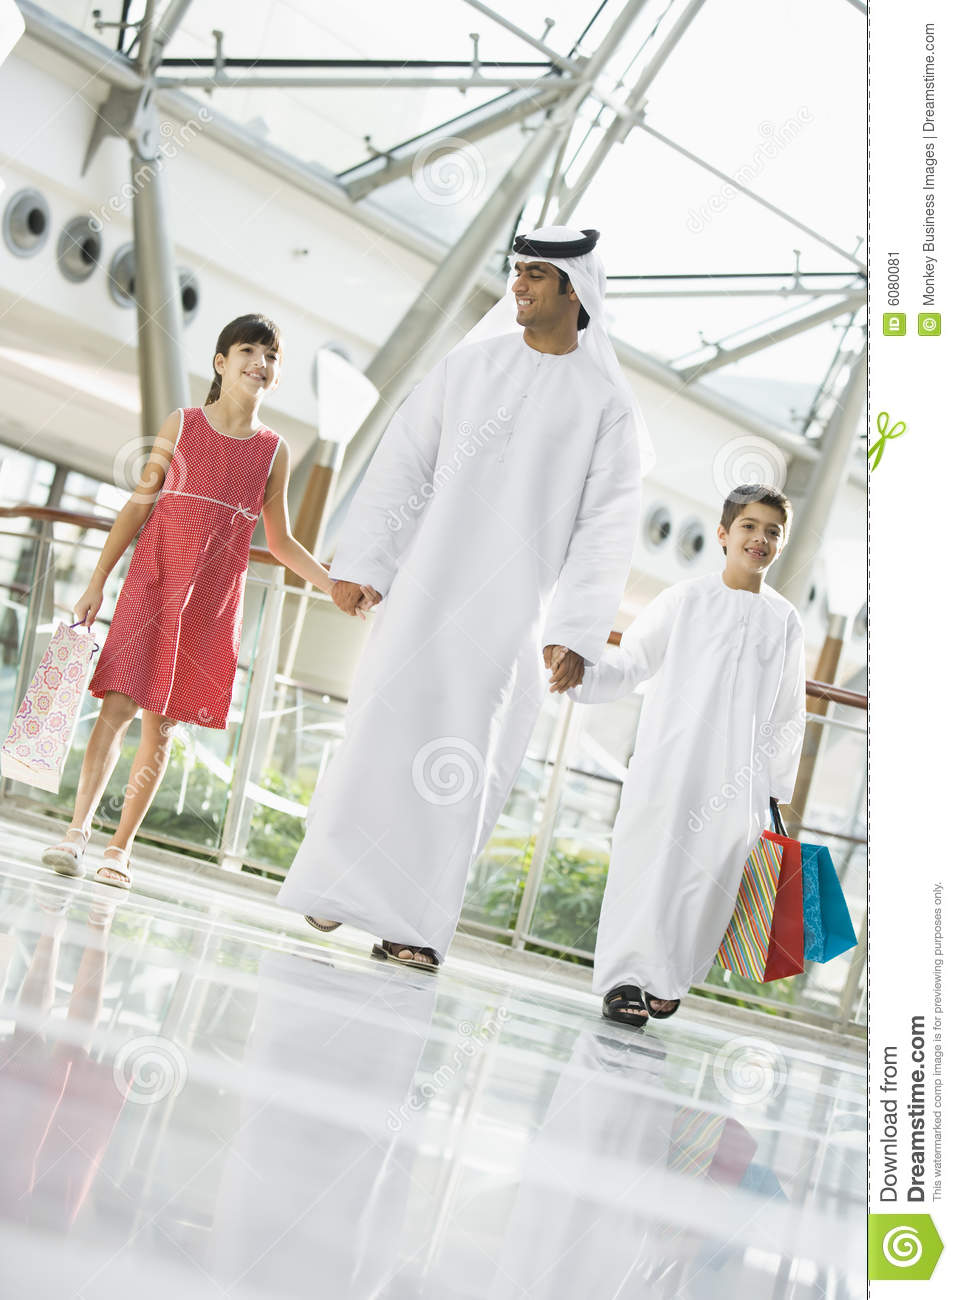 A Middle Eastern man with two children shopping